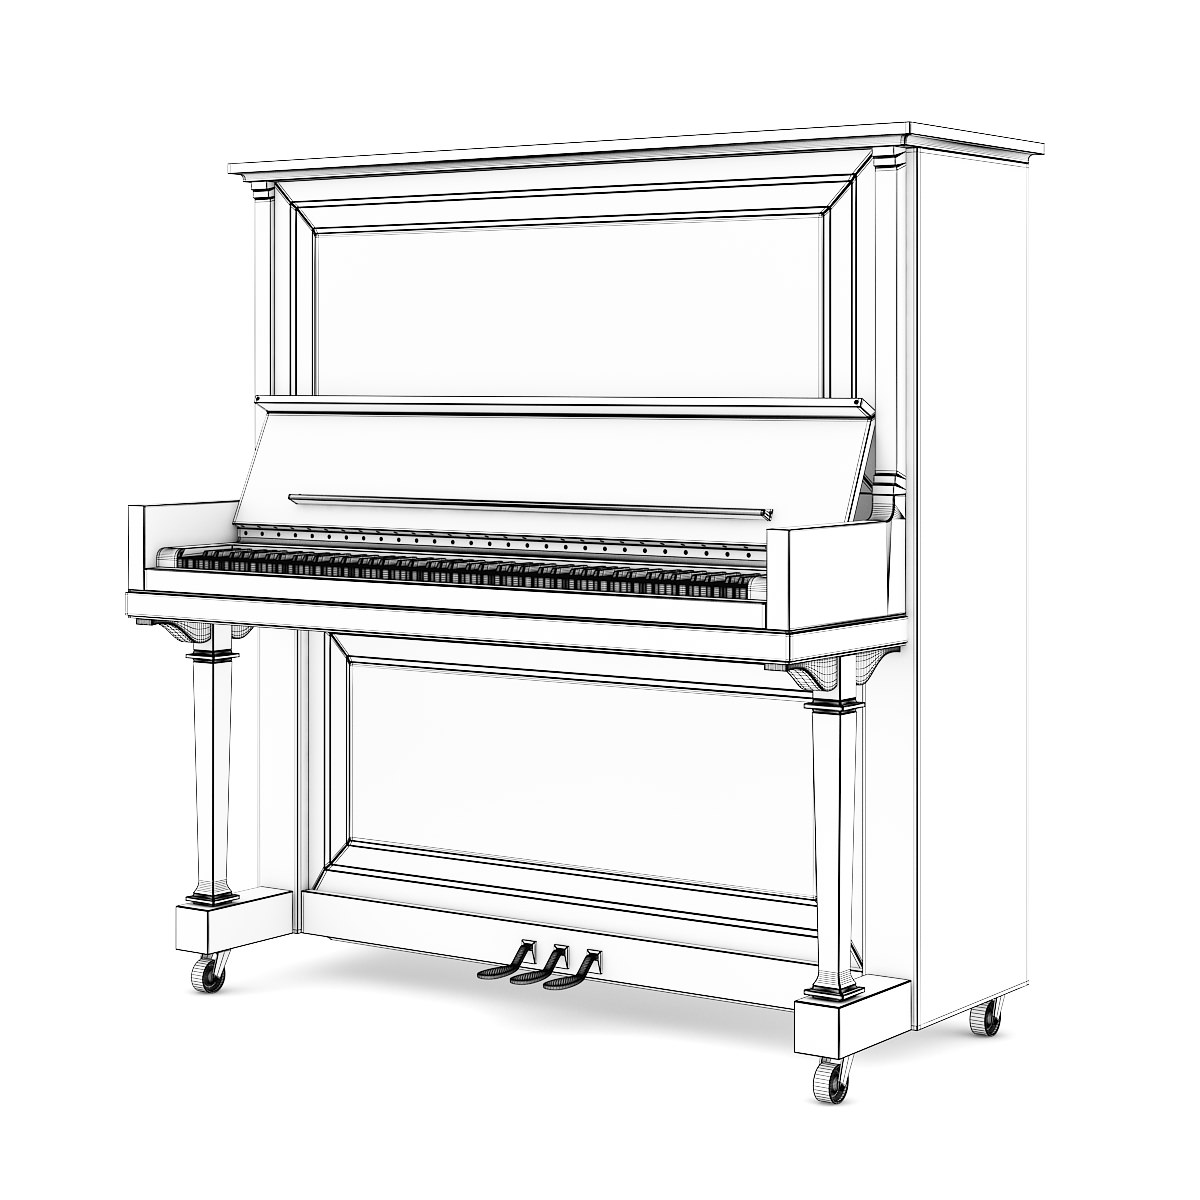 drawings of pianos collection of free piano drawing detailed download music of pianos drawings